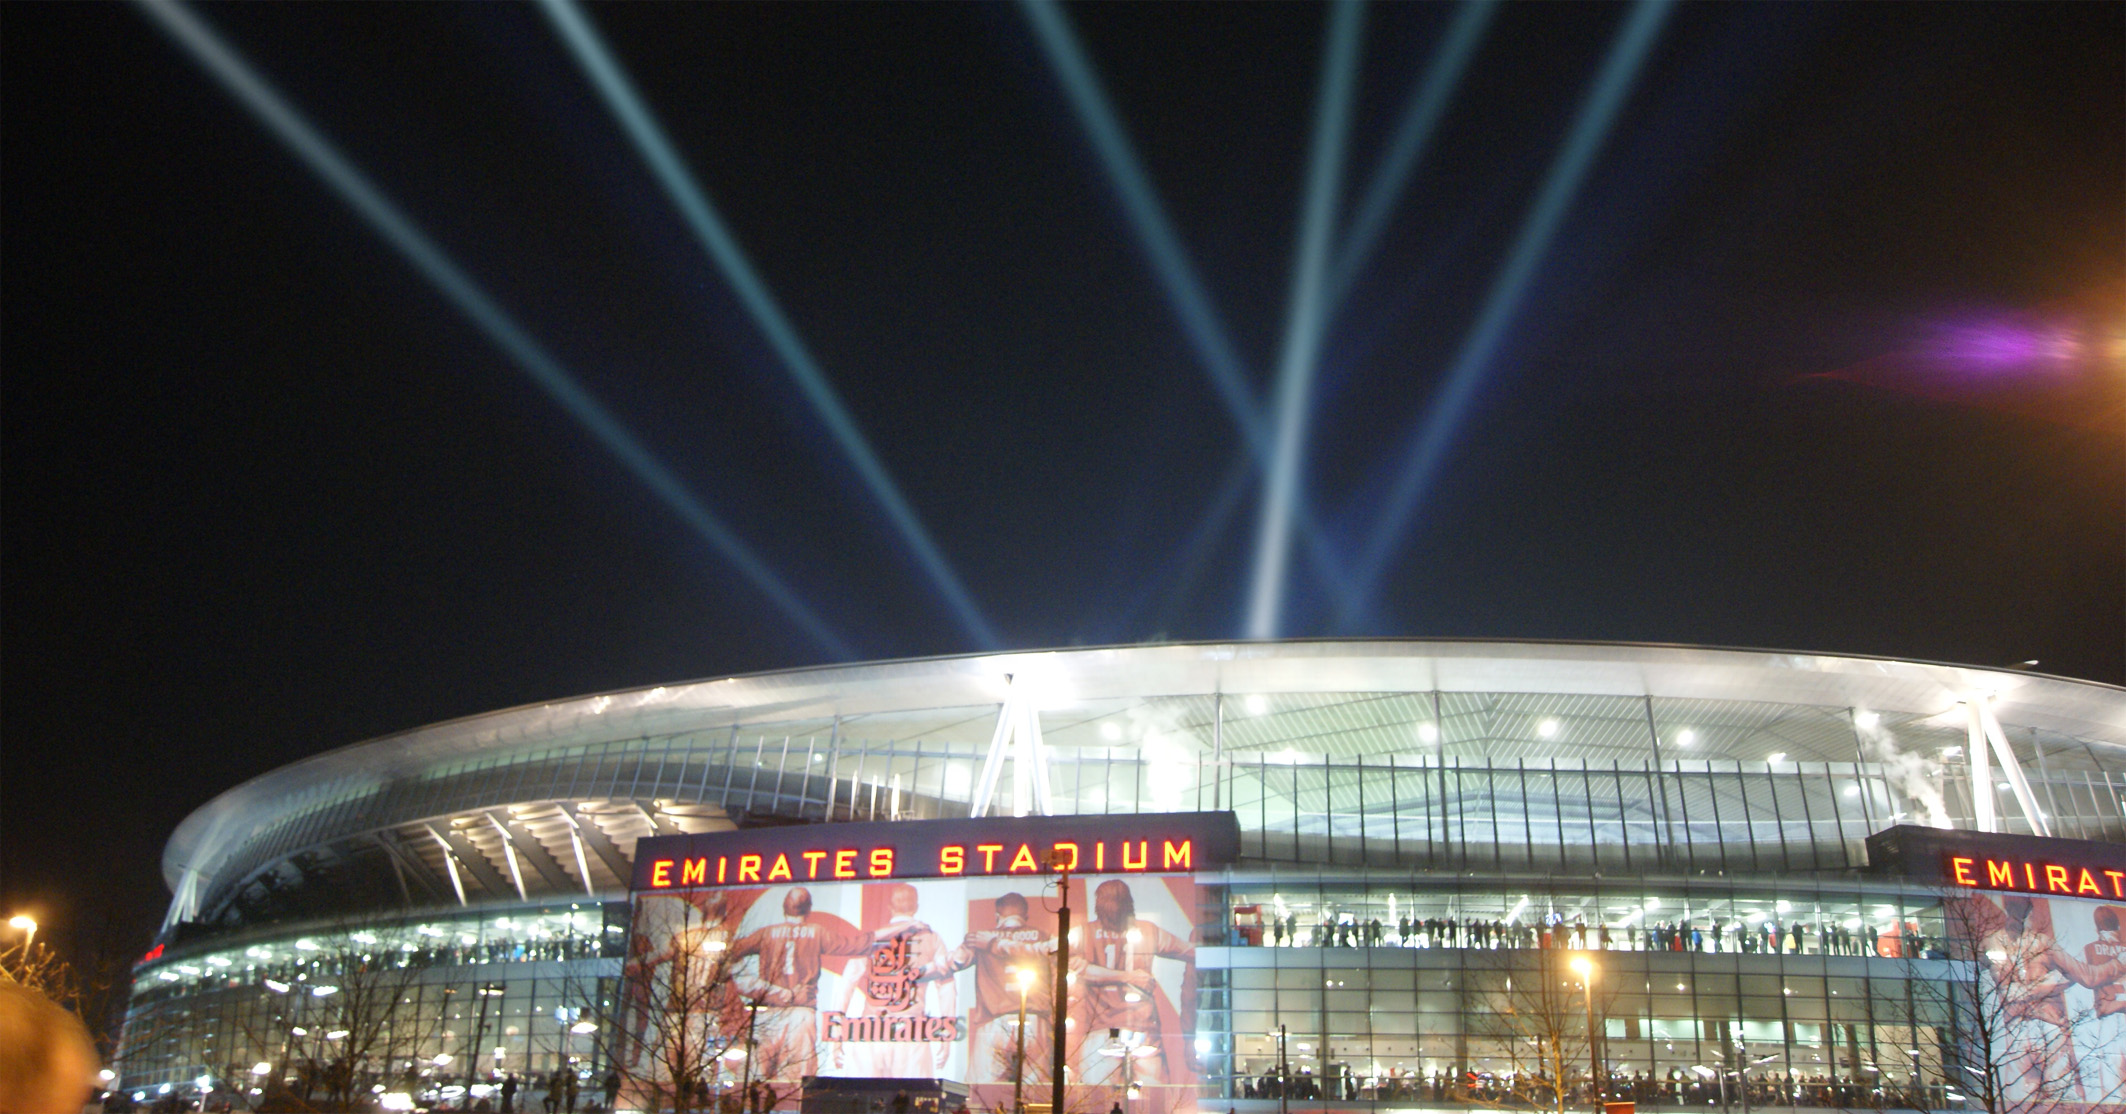 Searchlights at Emirates Stadium